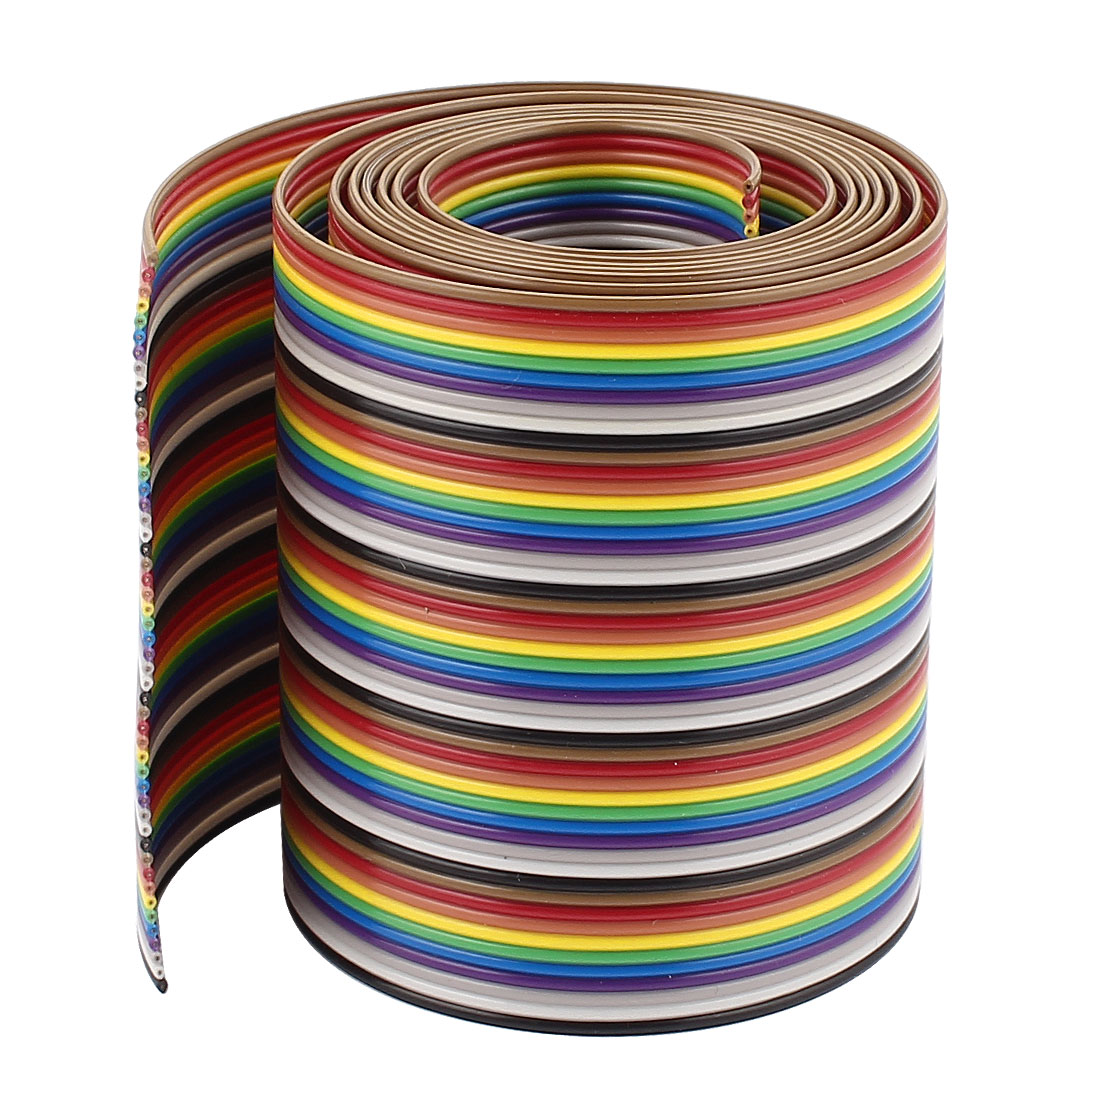 1m 3.3ft 50 Way Rainbow Color IDC Flat Ribbon Cable 1.27mm Pitch for Arduino DIY